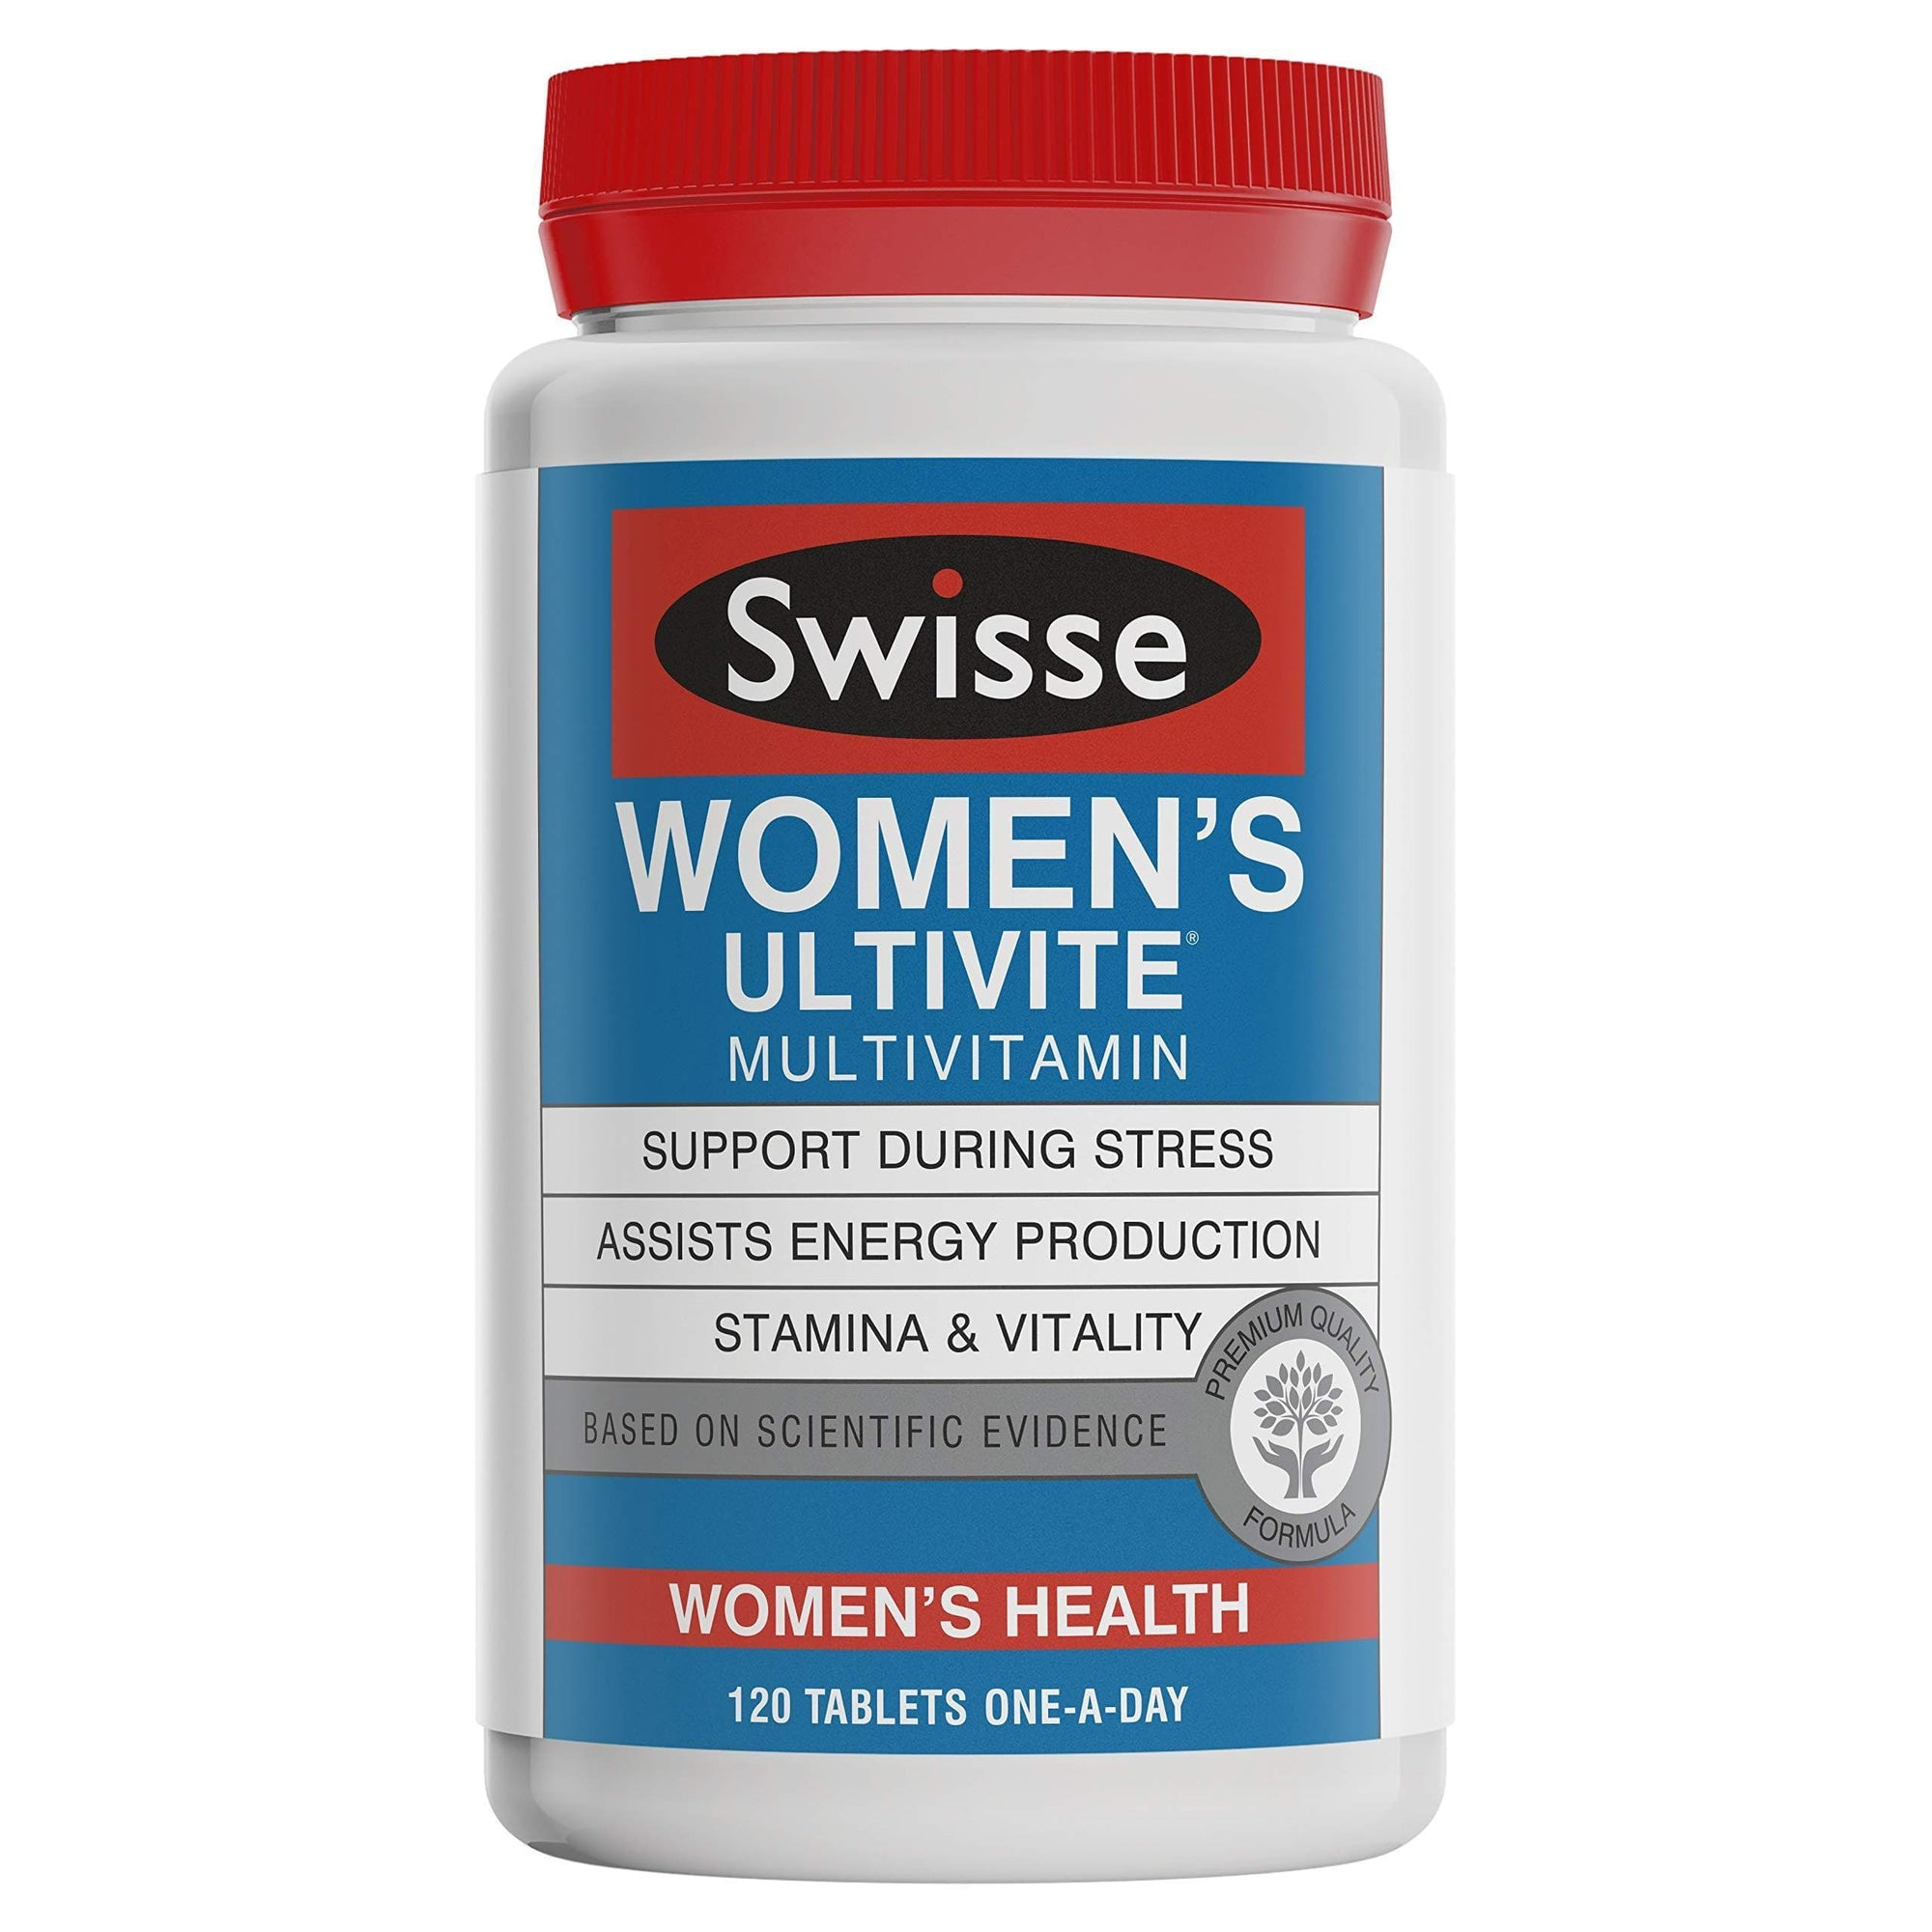 Swisse Womens Ultivite 120 Tablets